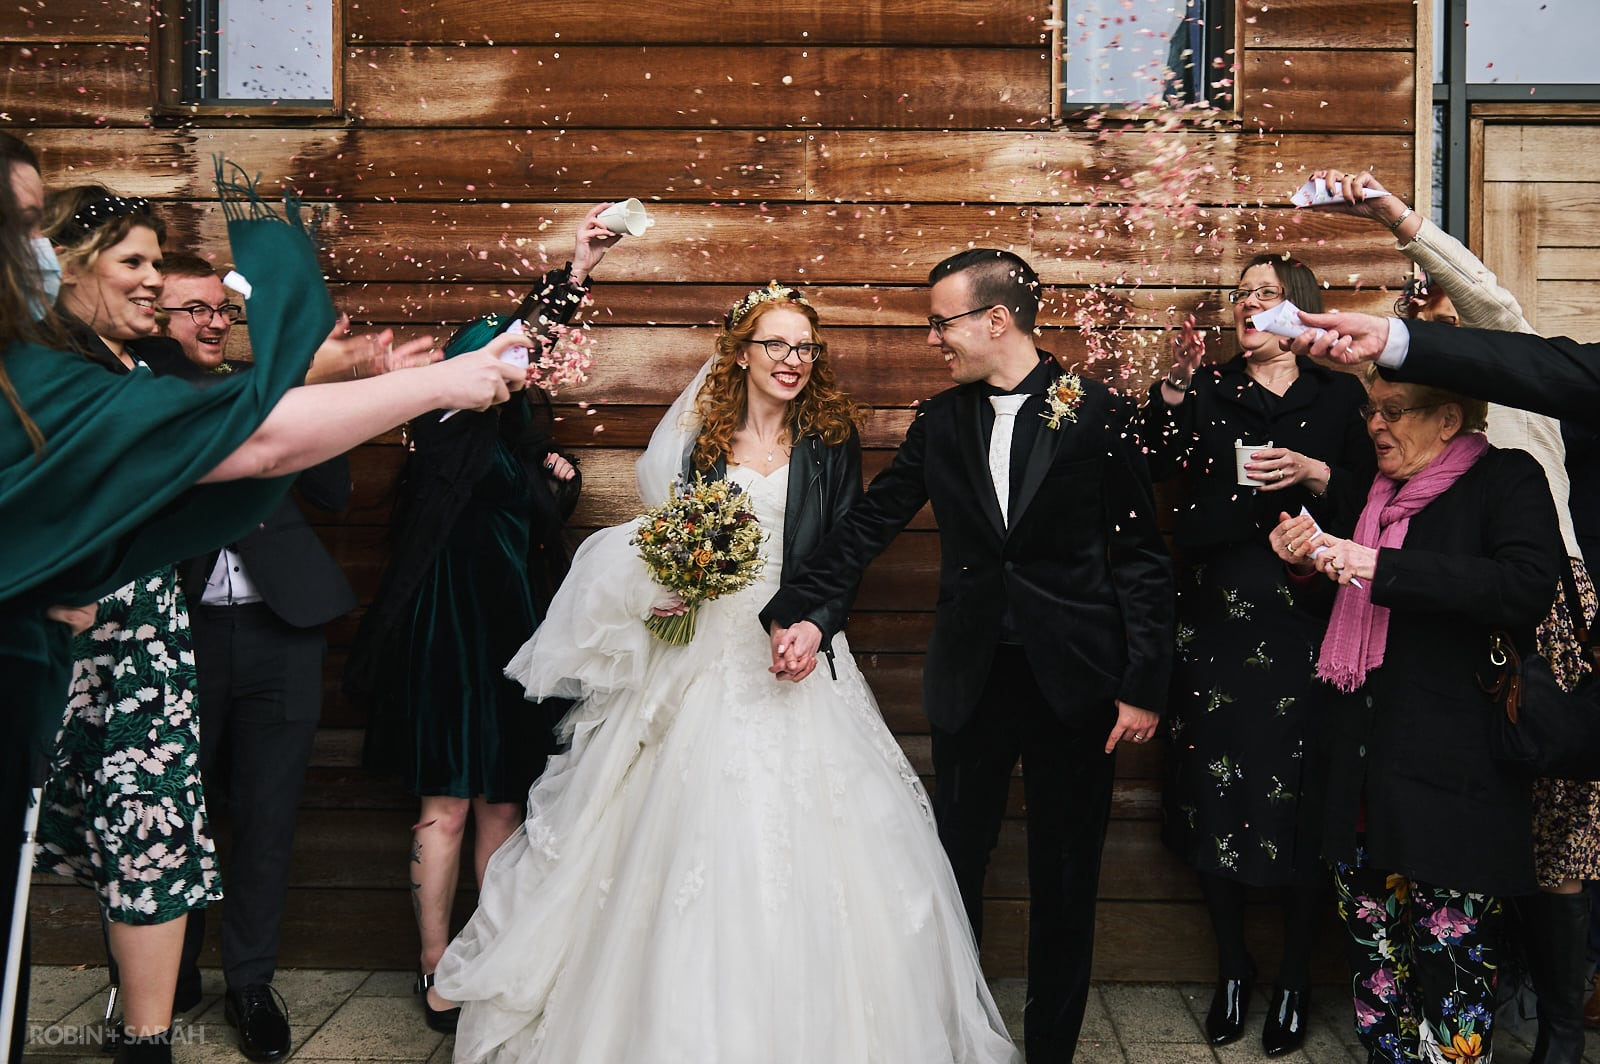 Alternative bride and groom happy and smiling as wedding guests throw confetti